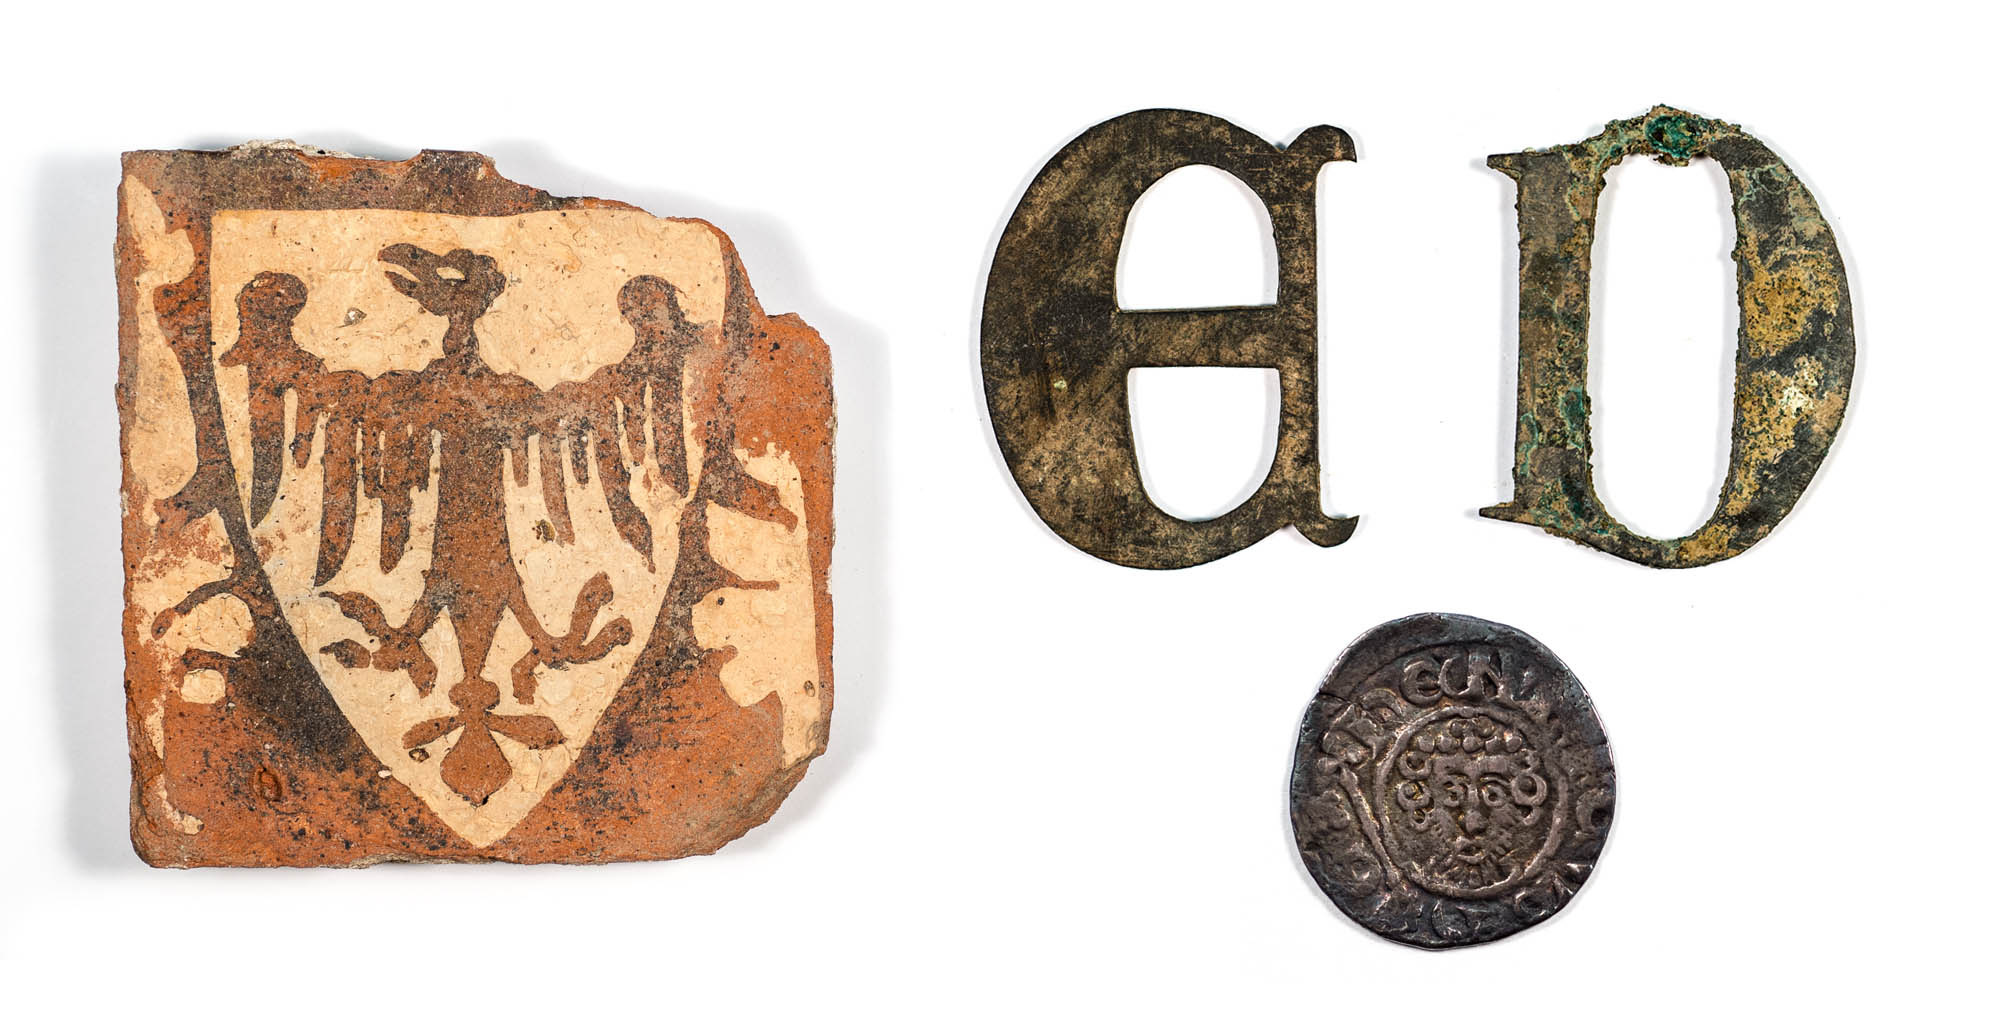 A selection of artefacts found during the excavation of the Grey Friars church: inlaid floor tile, tomb lettering and a coin - See artefacts like this at the Guildhall